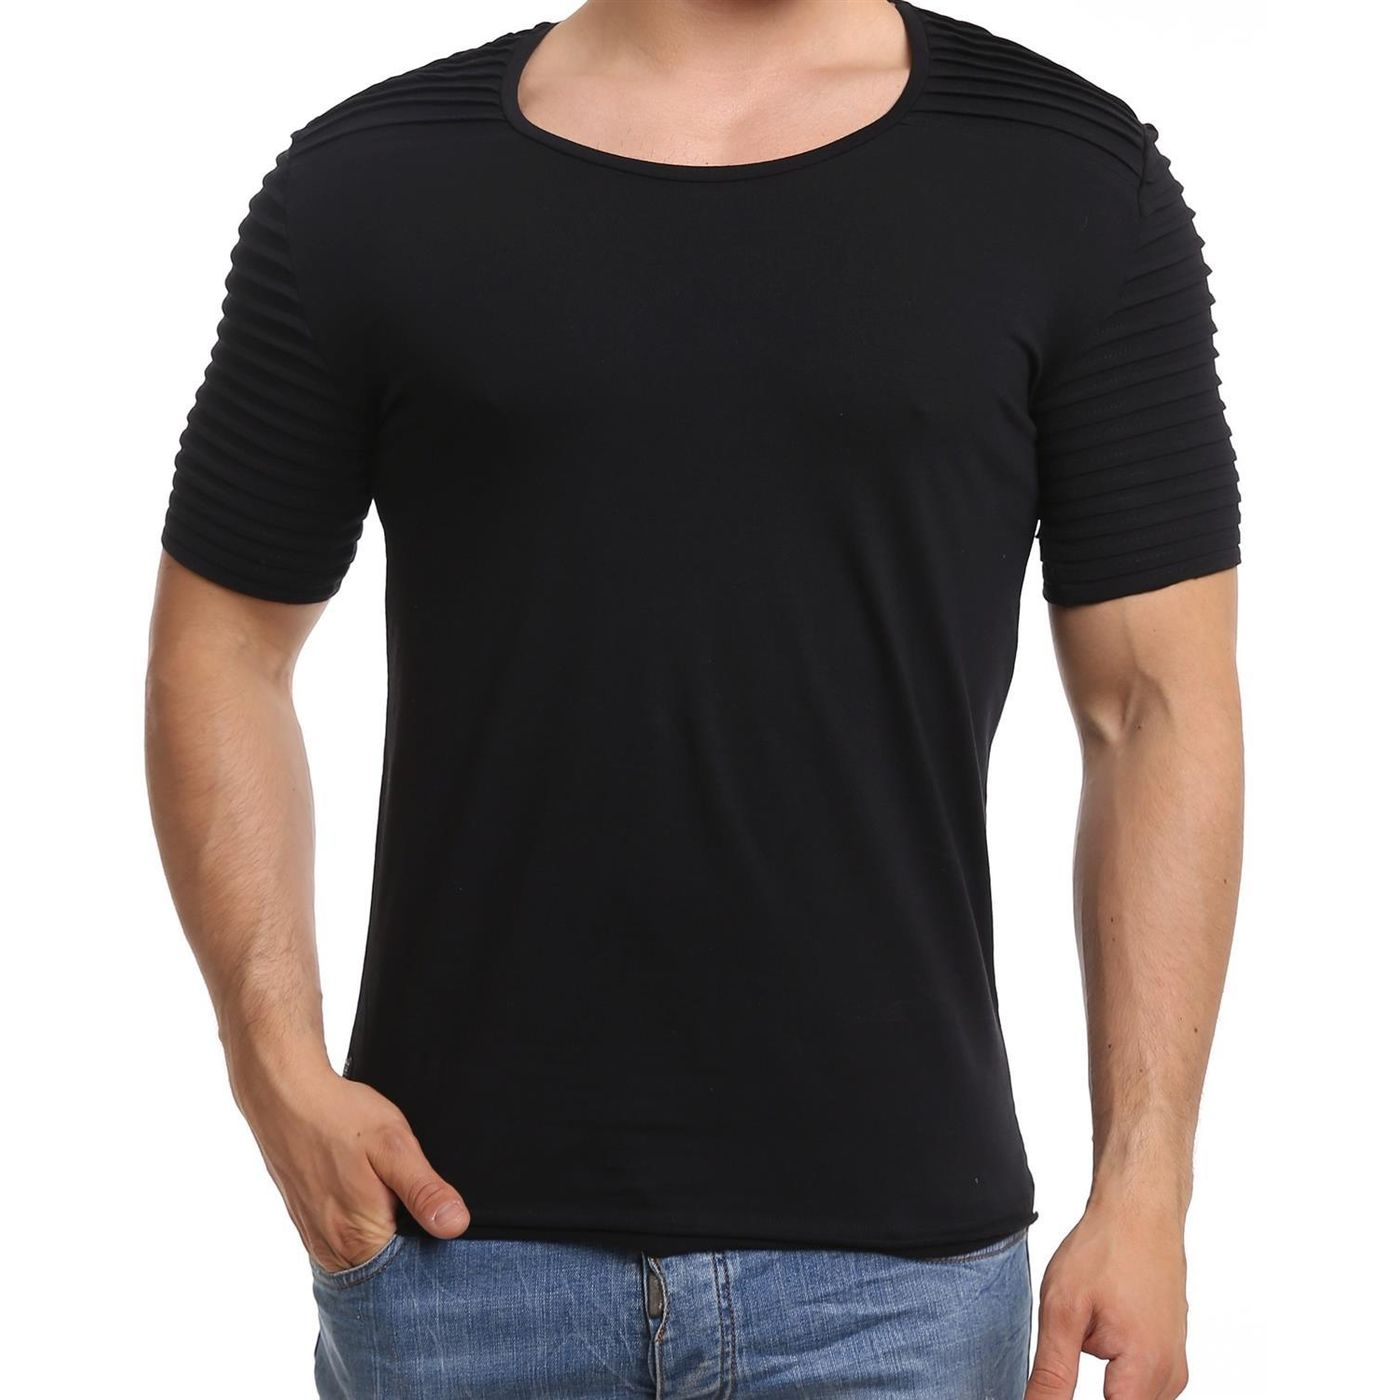 976d102a065741 Red Bridge Herren Oversize Basic T-Shirt M1035-black - Redbridge ...